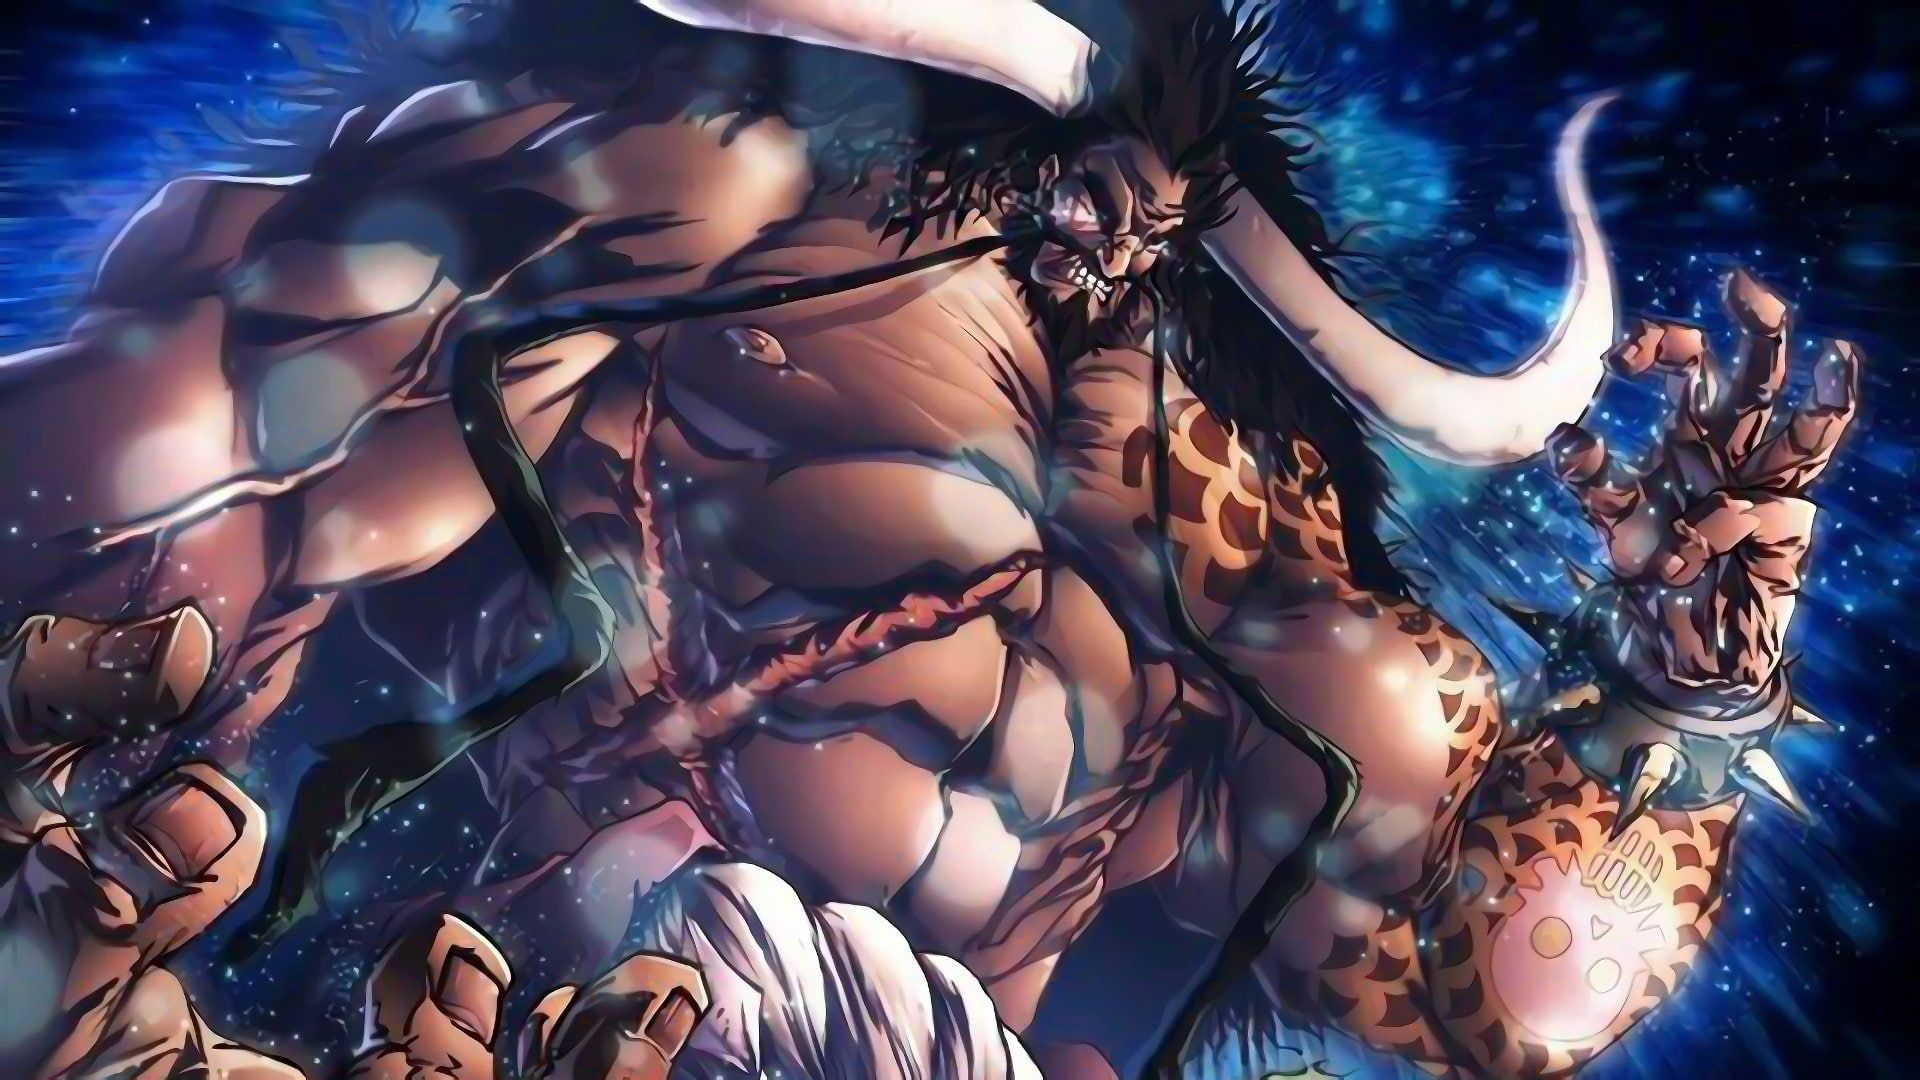 Anime One Piece Kaido One Piece 1080p Wallpaper Hdwallpaper Desktop Kaido One Piece Anime One Piece Chapter